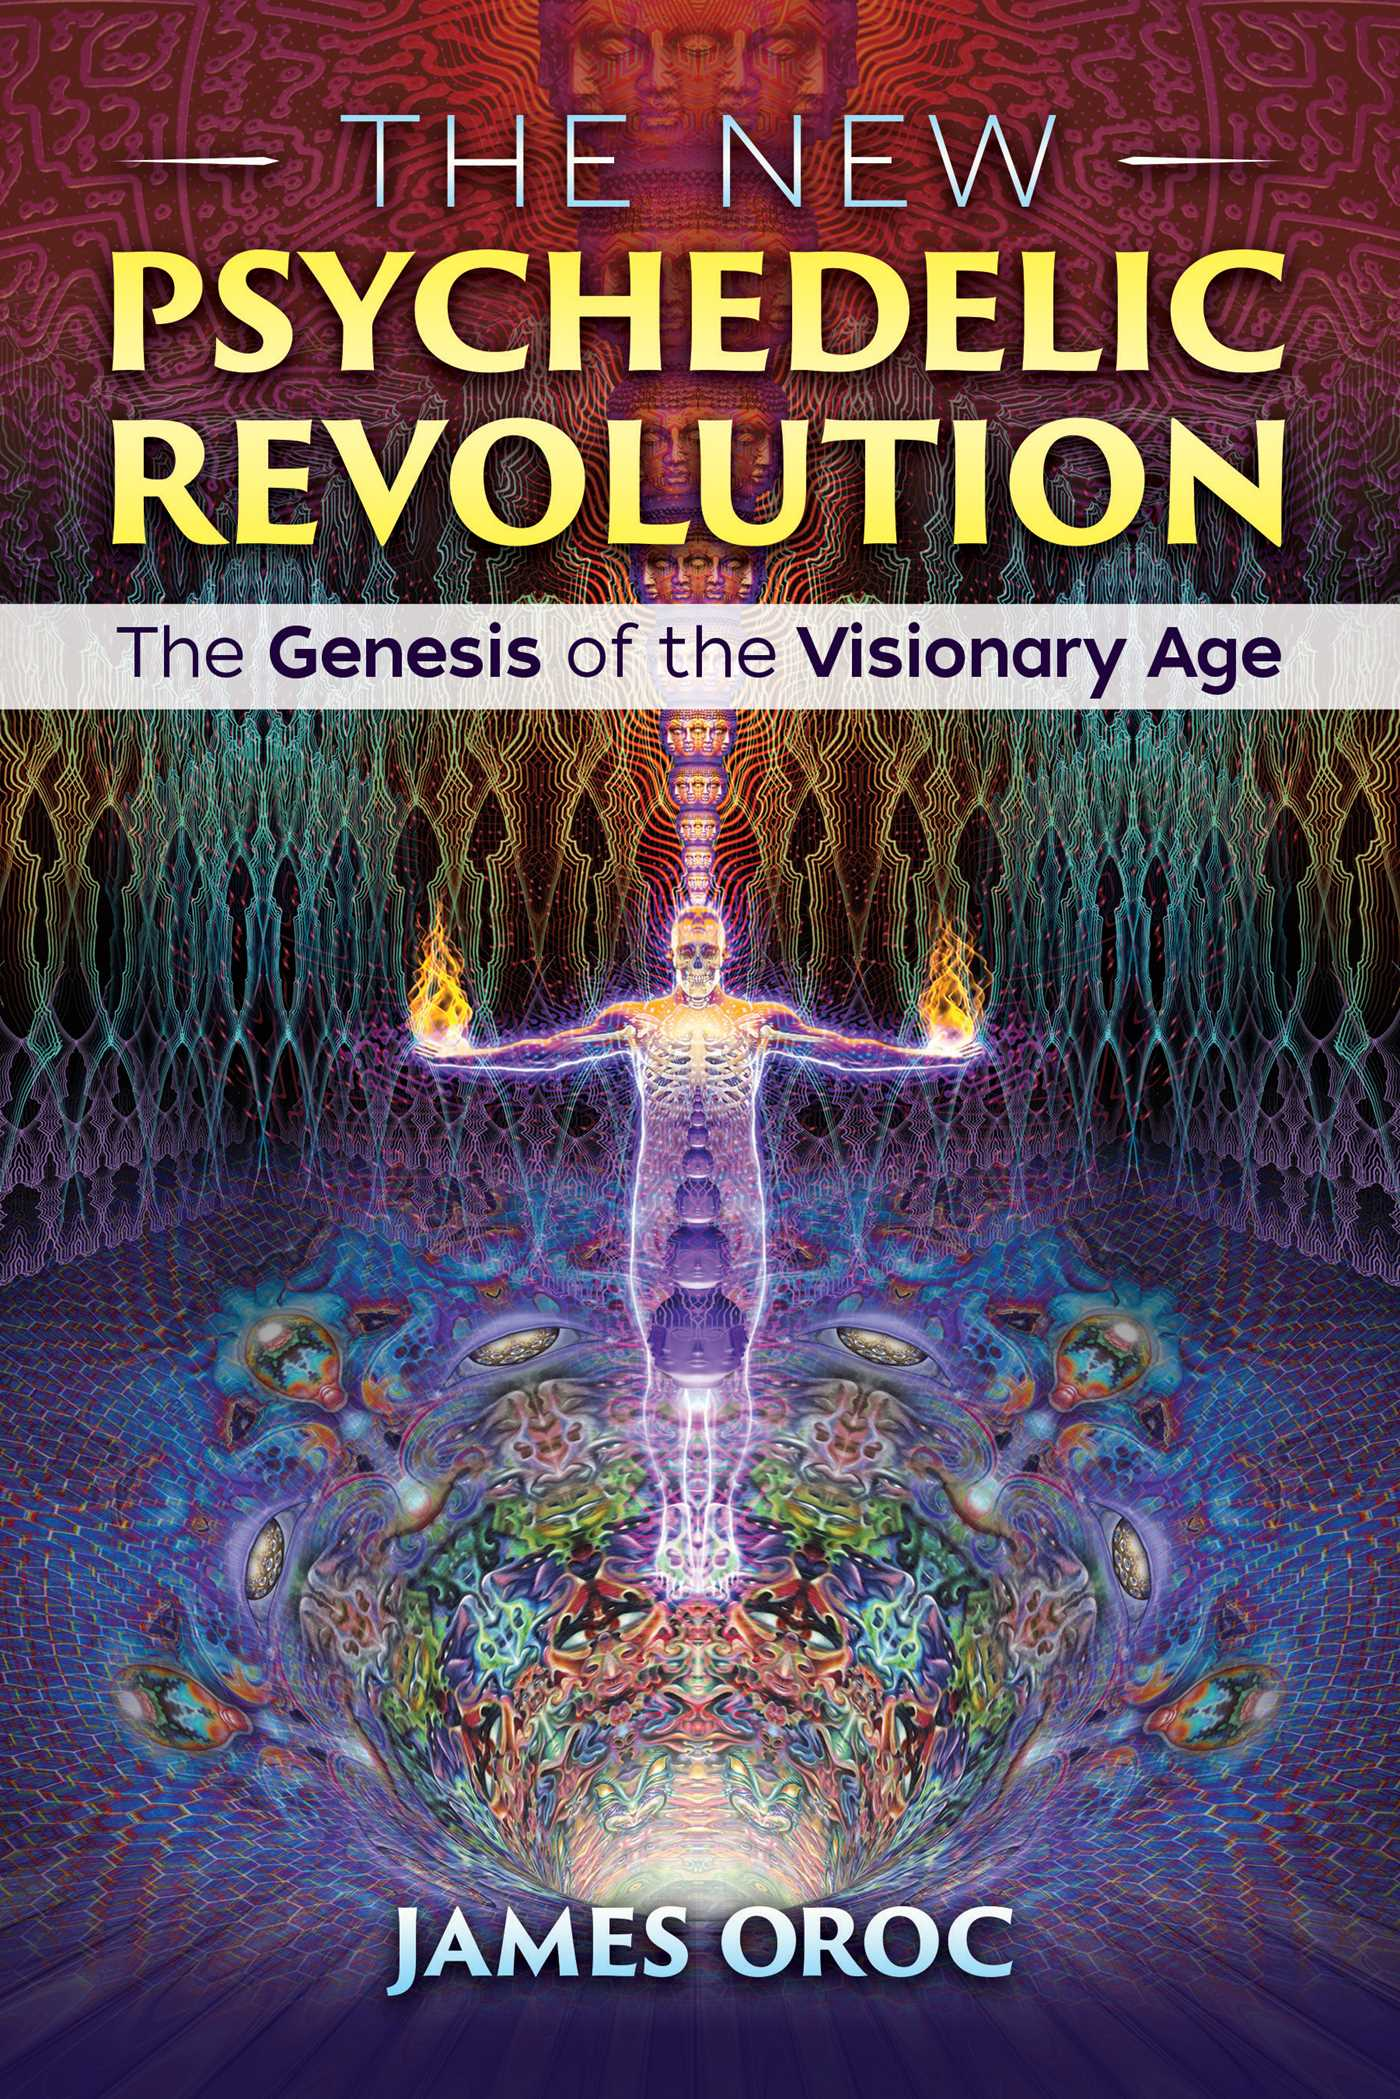 The new psychedelic revolution 9781620556627 hr